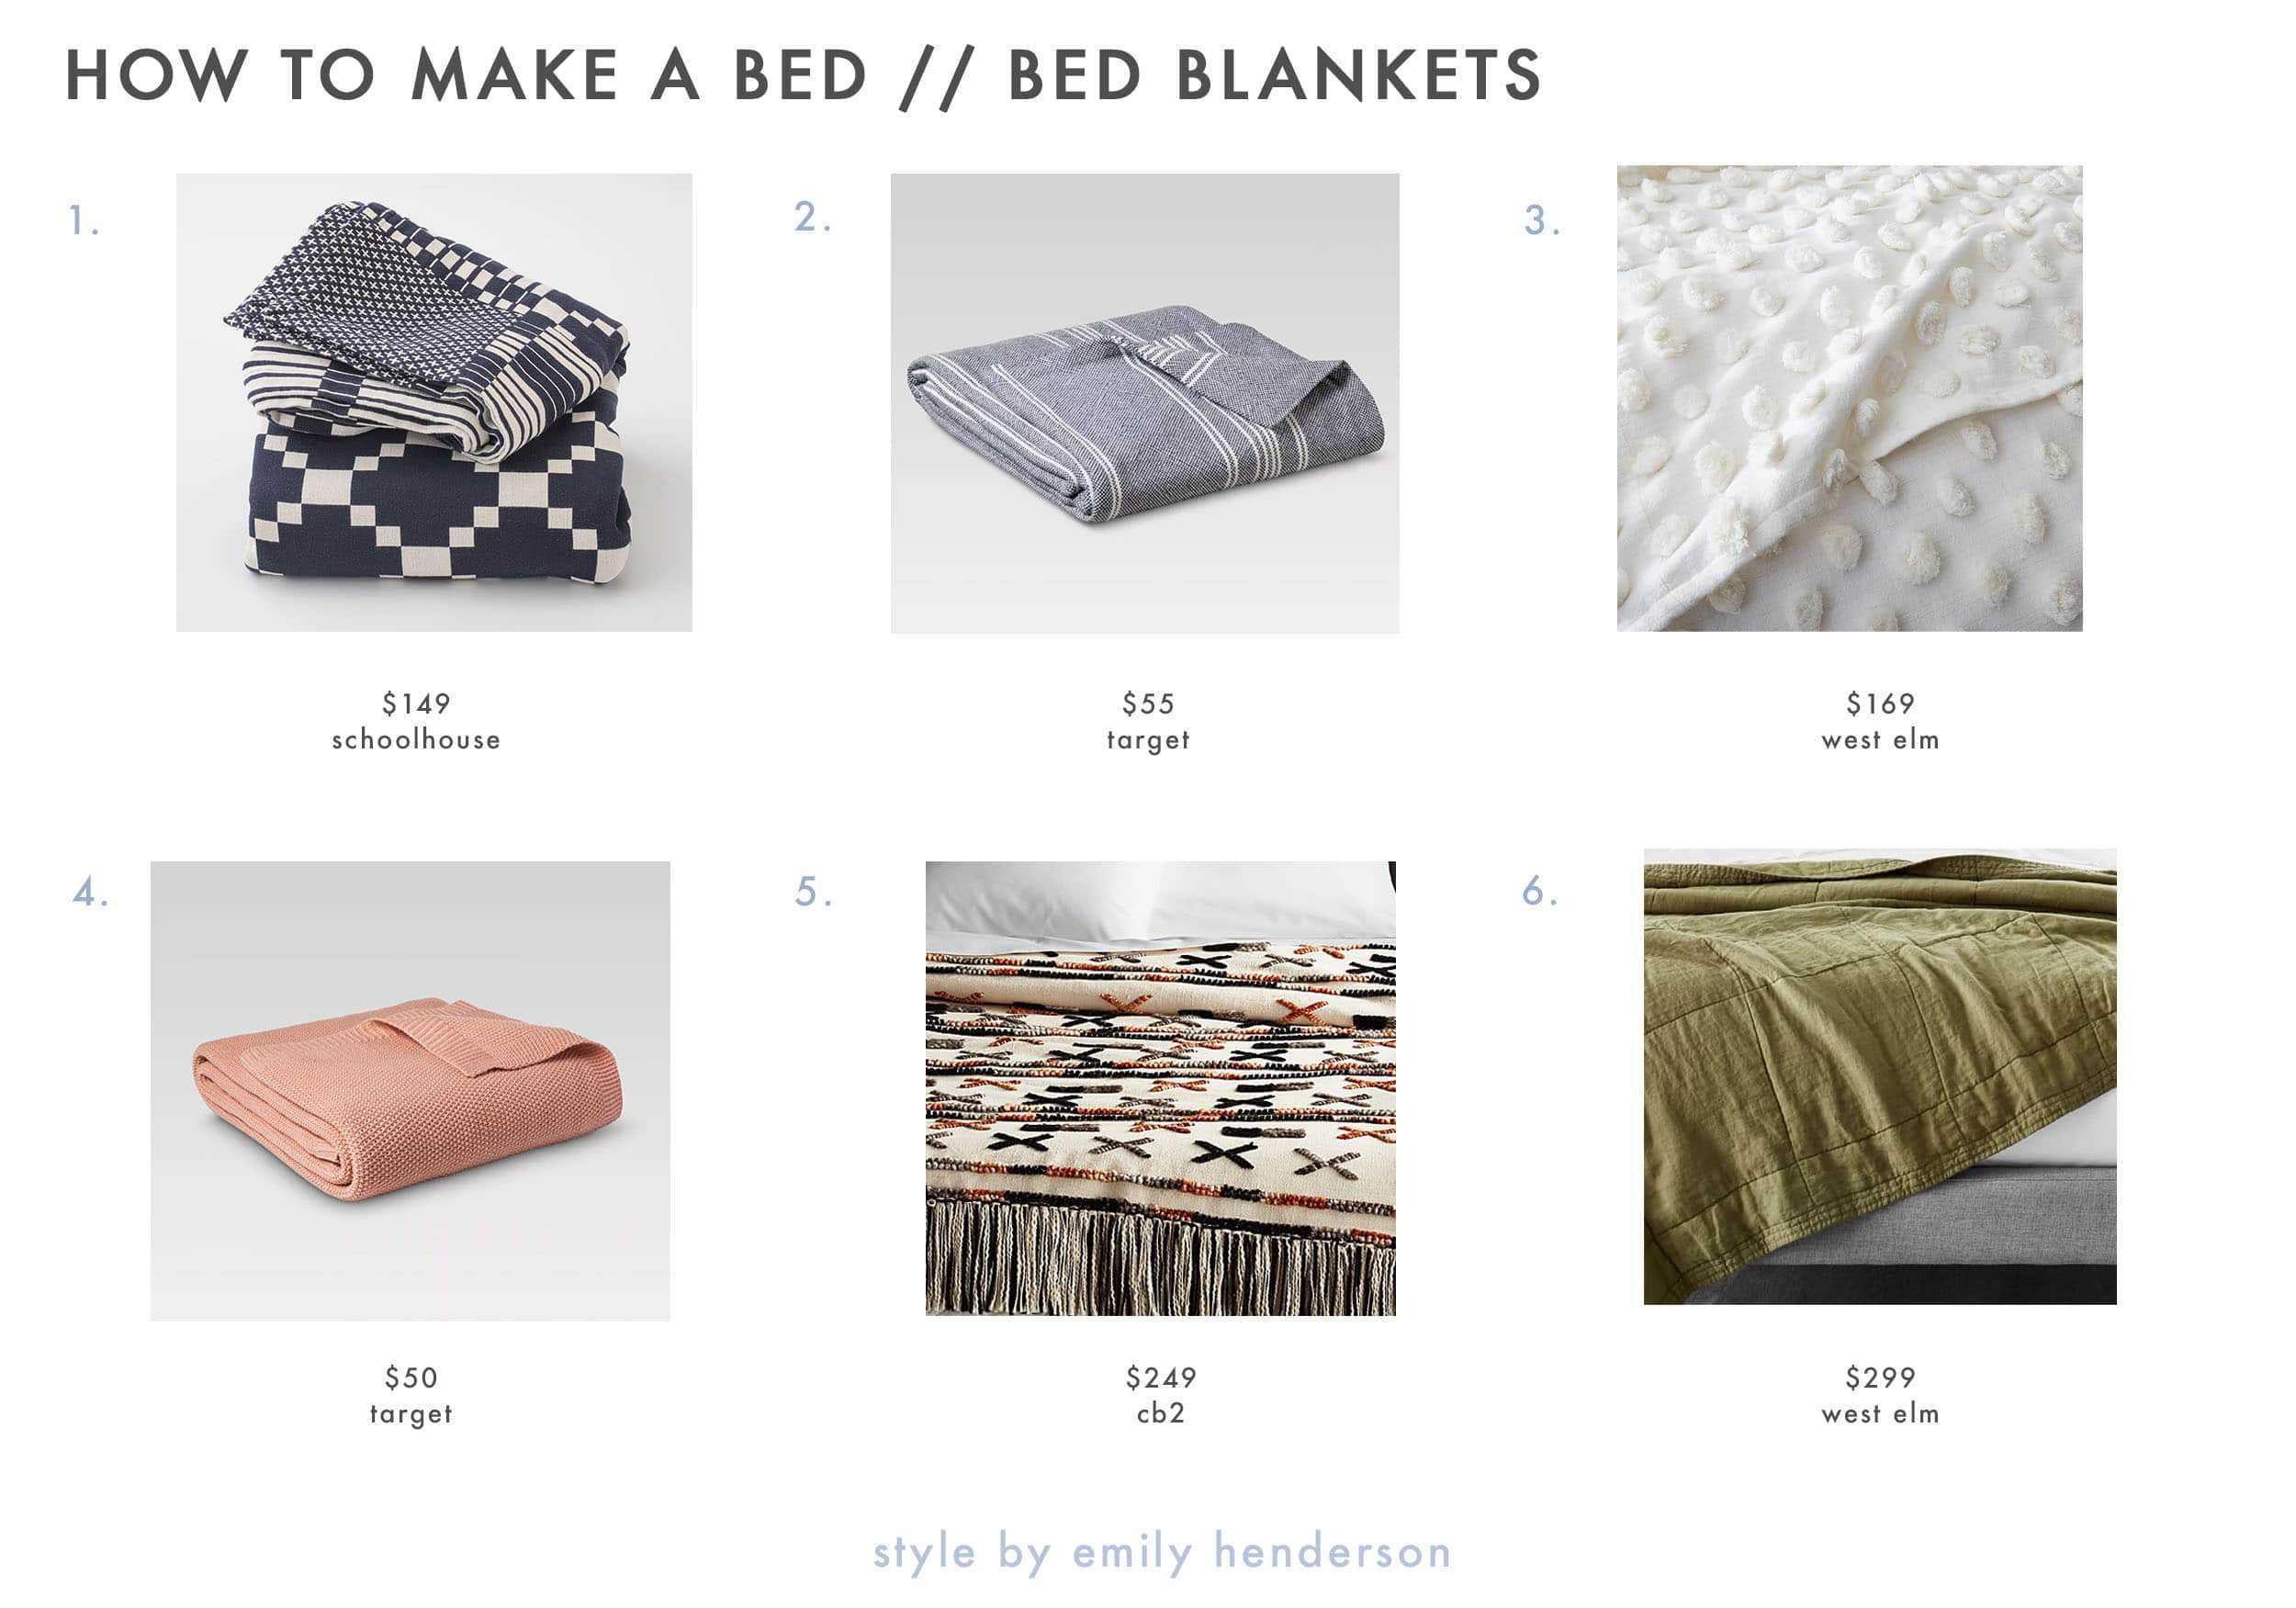 Emily Henderson How To Make A Bed Bed Blankets